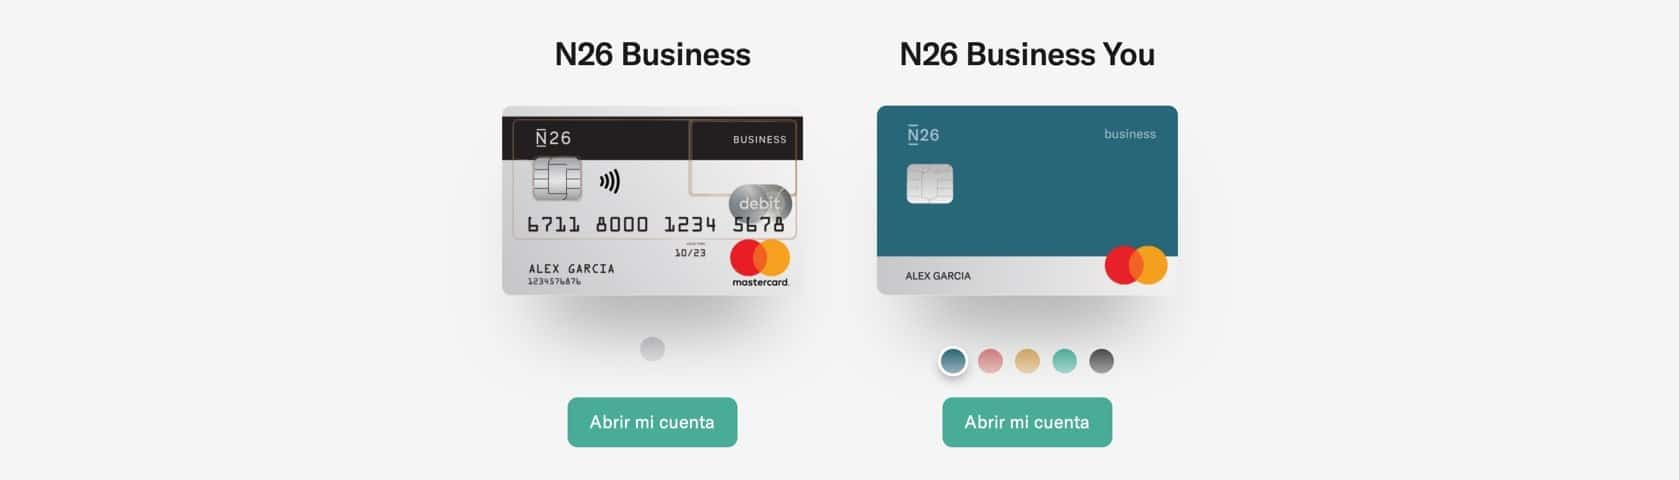 Planos-N26-Business